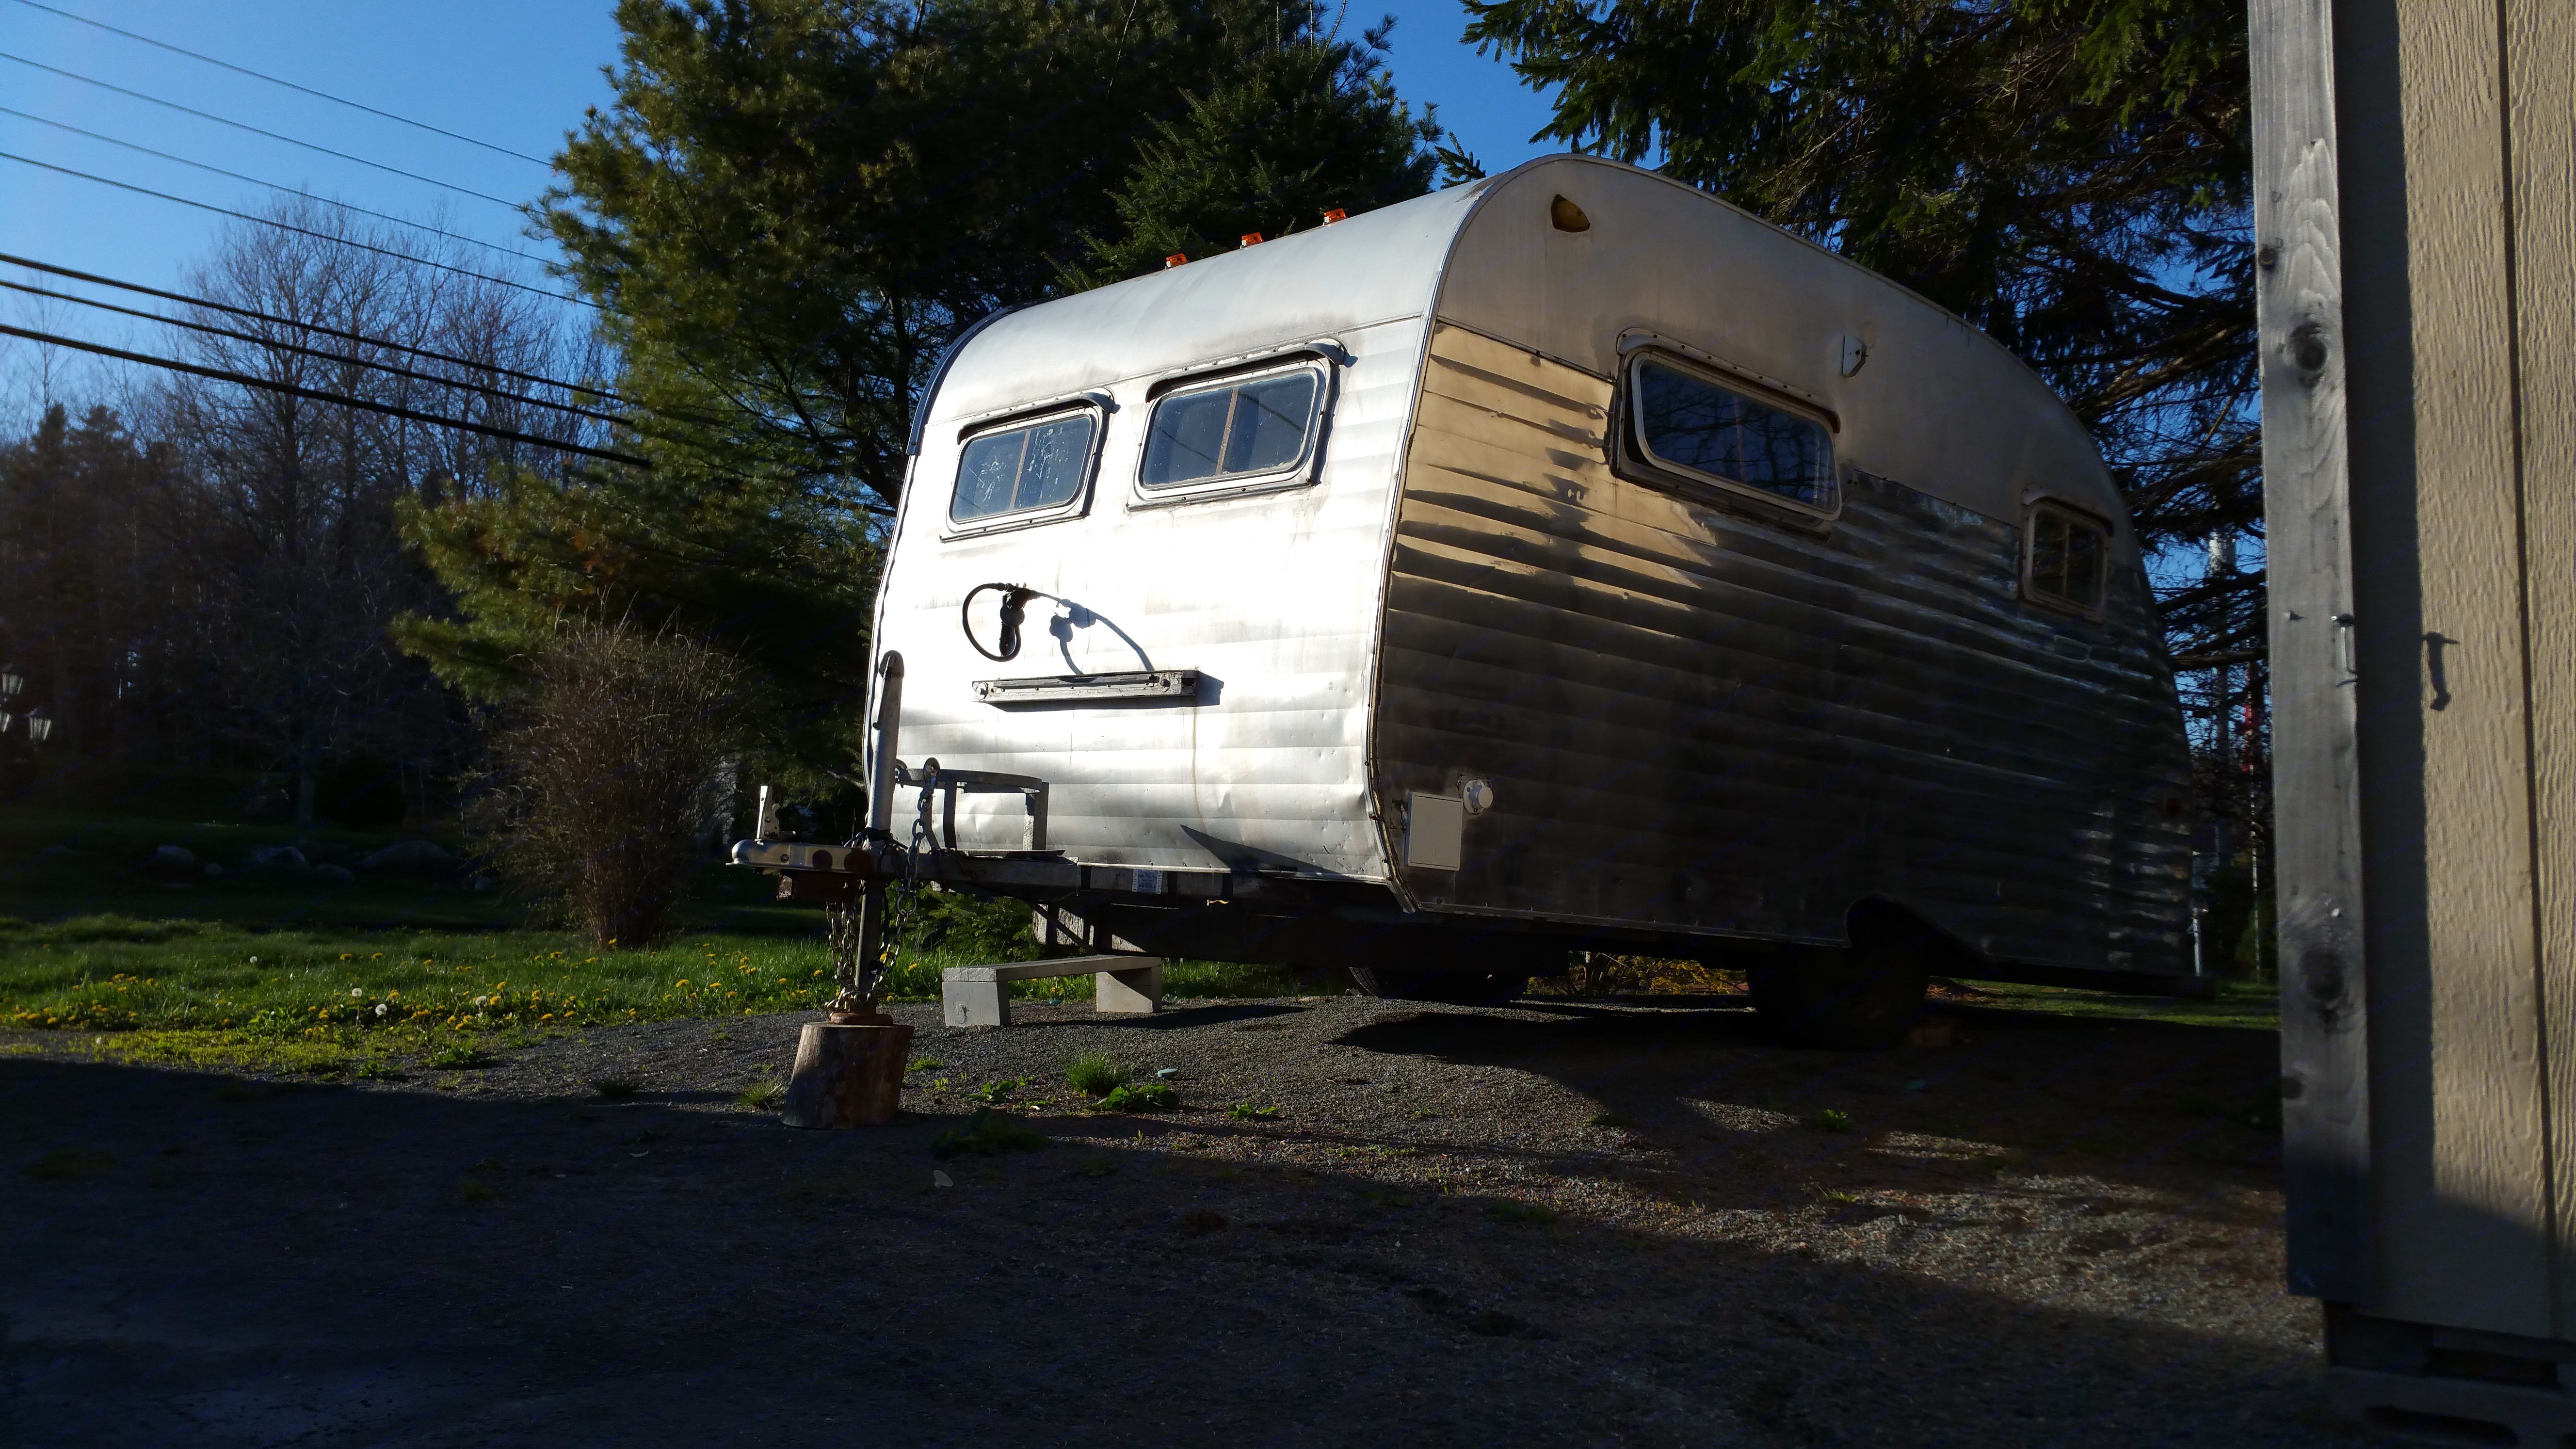 Grace is a true survivor - she has had 57 years to work on her patina, and has earned each of her exterior dents and dings.   Her interior has been lovingly rebuilt in a custom design to allow more space than she originally had. . Serro Scotty Sportsman 1961